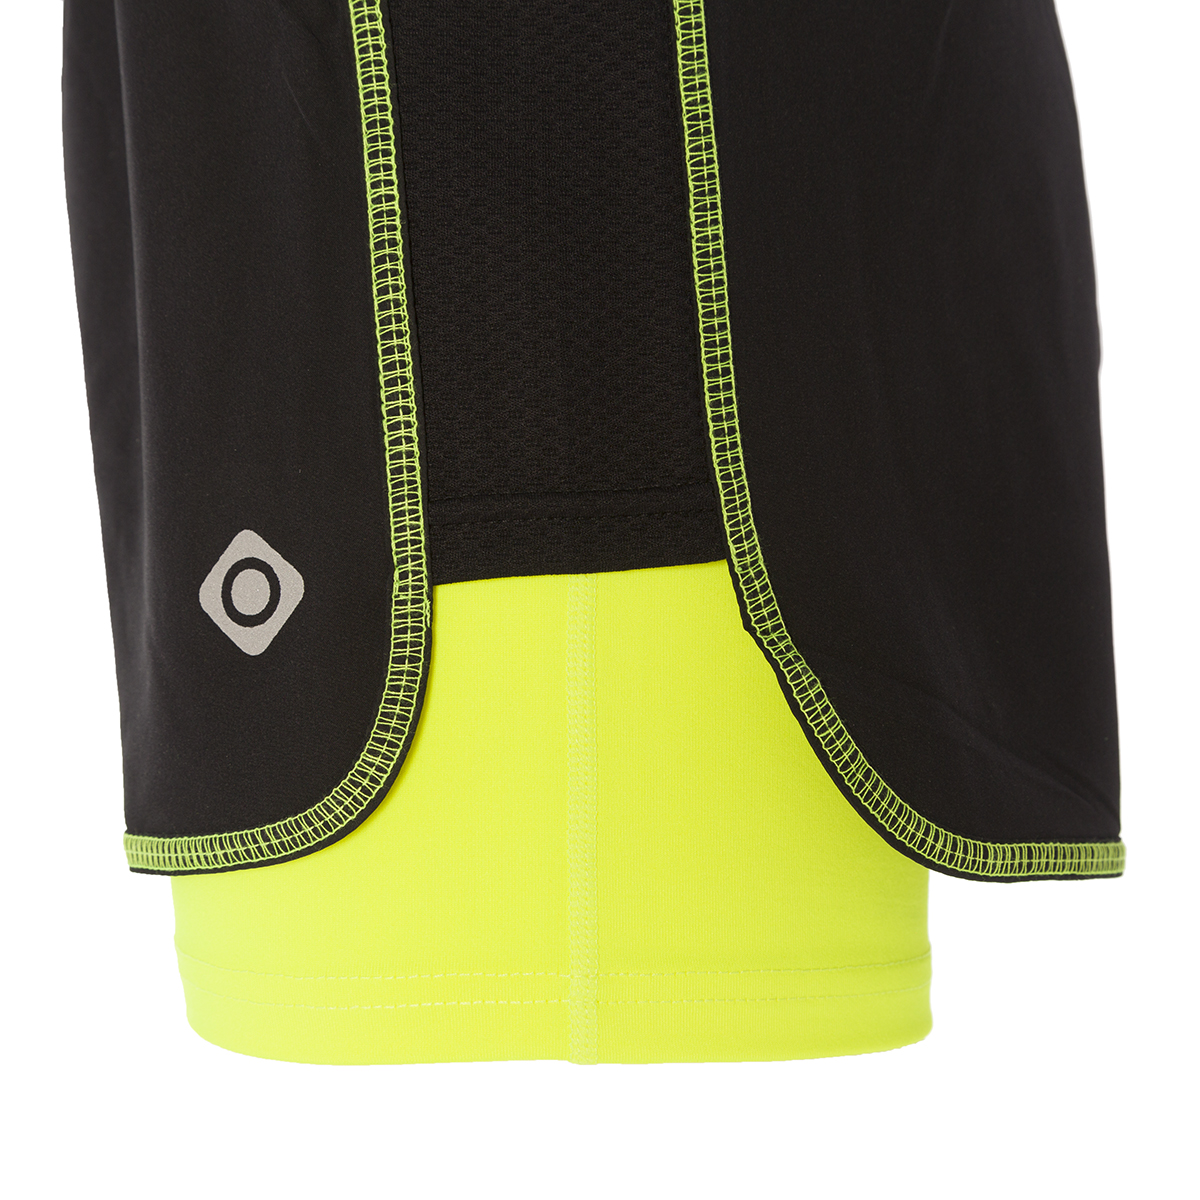 WOMAN'S NAO RUNNING SHORT BLACK